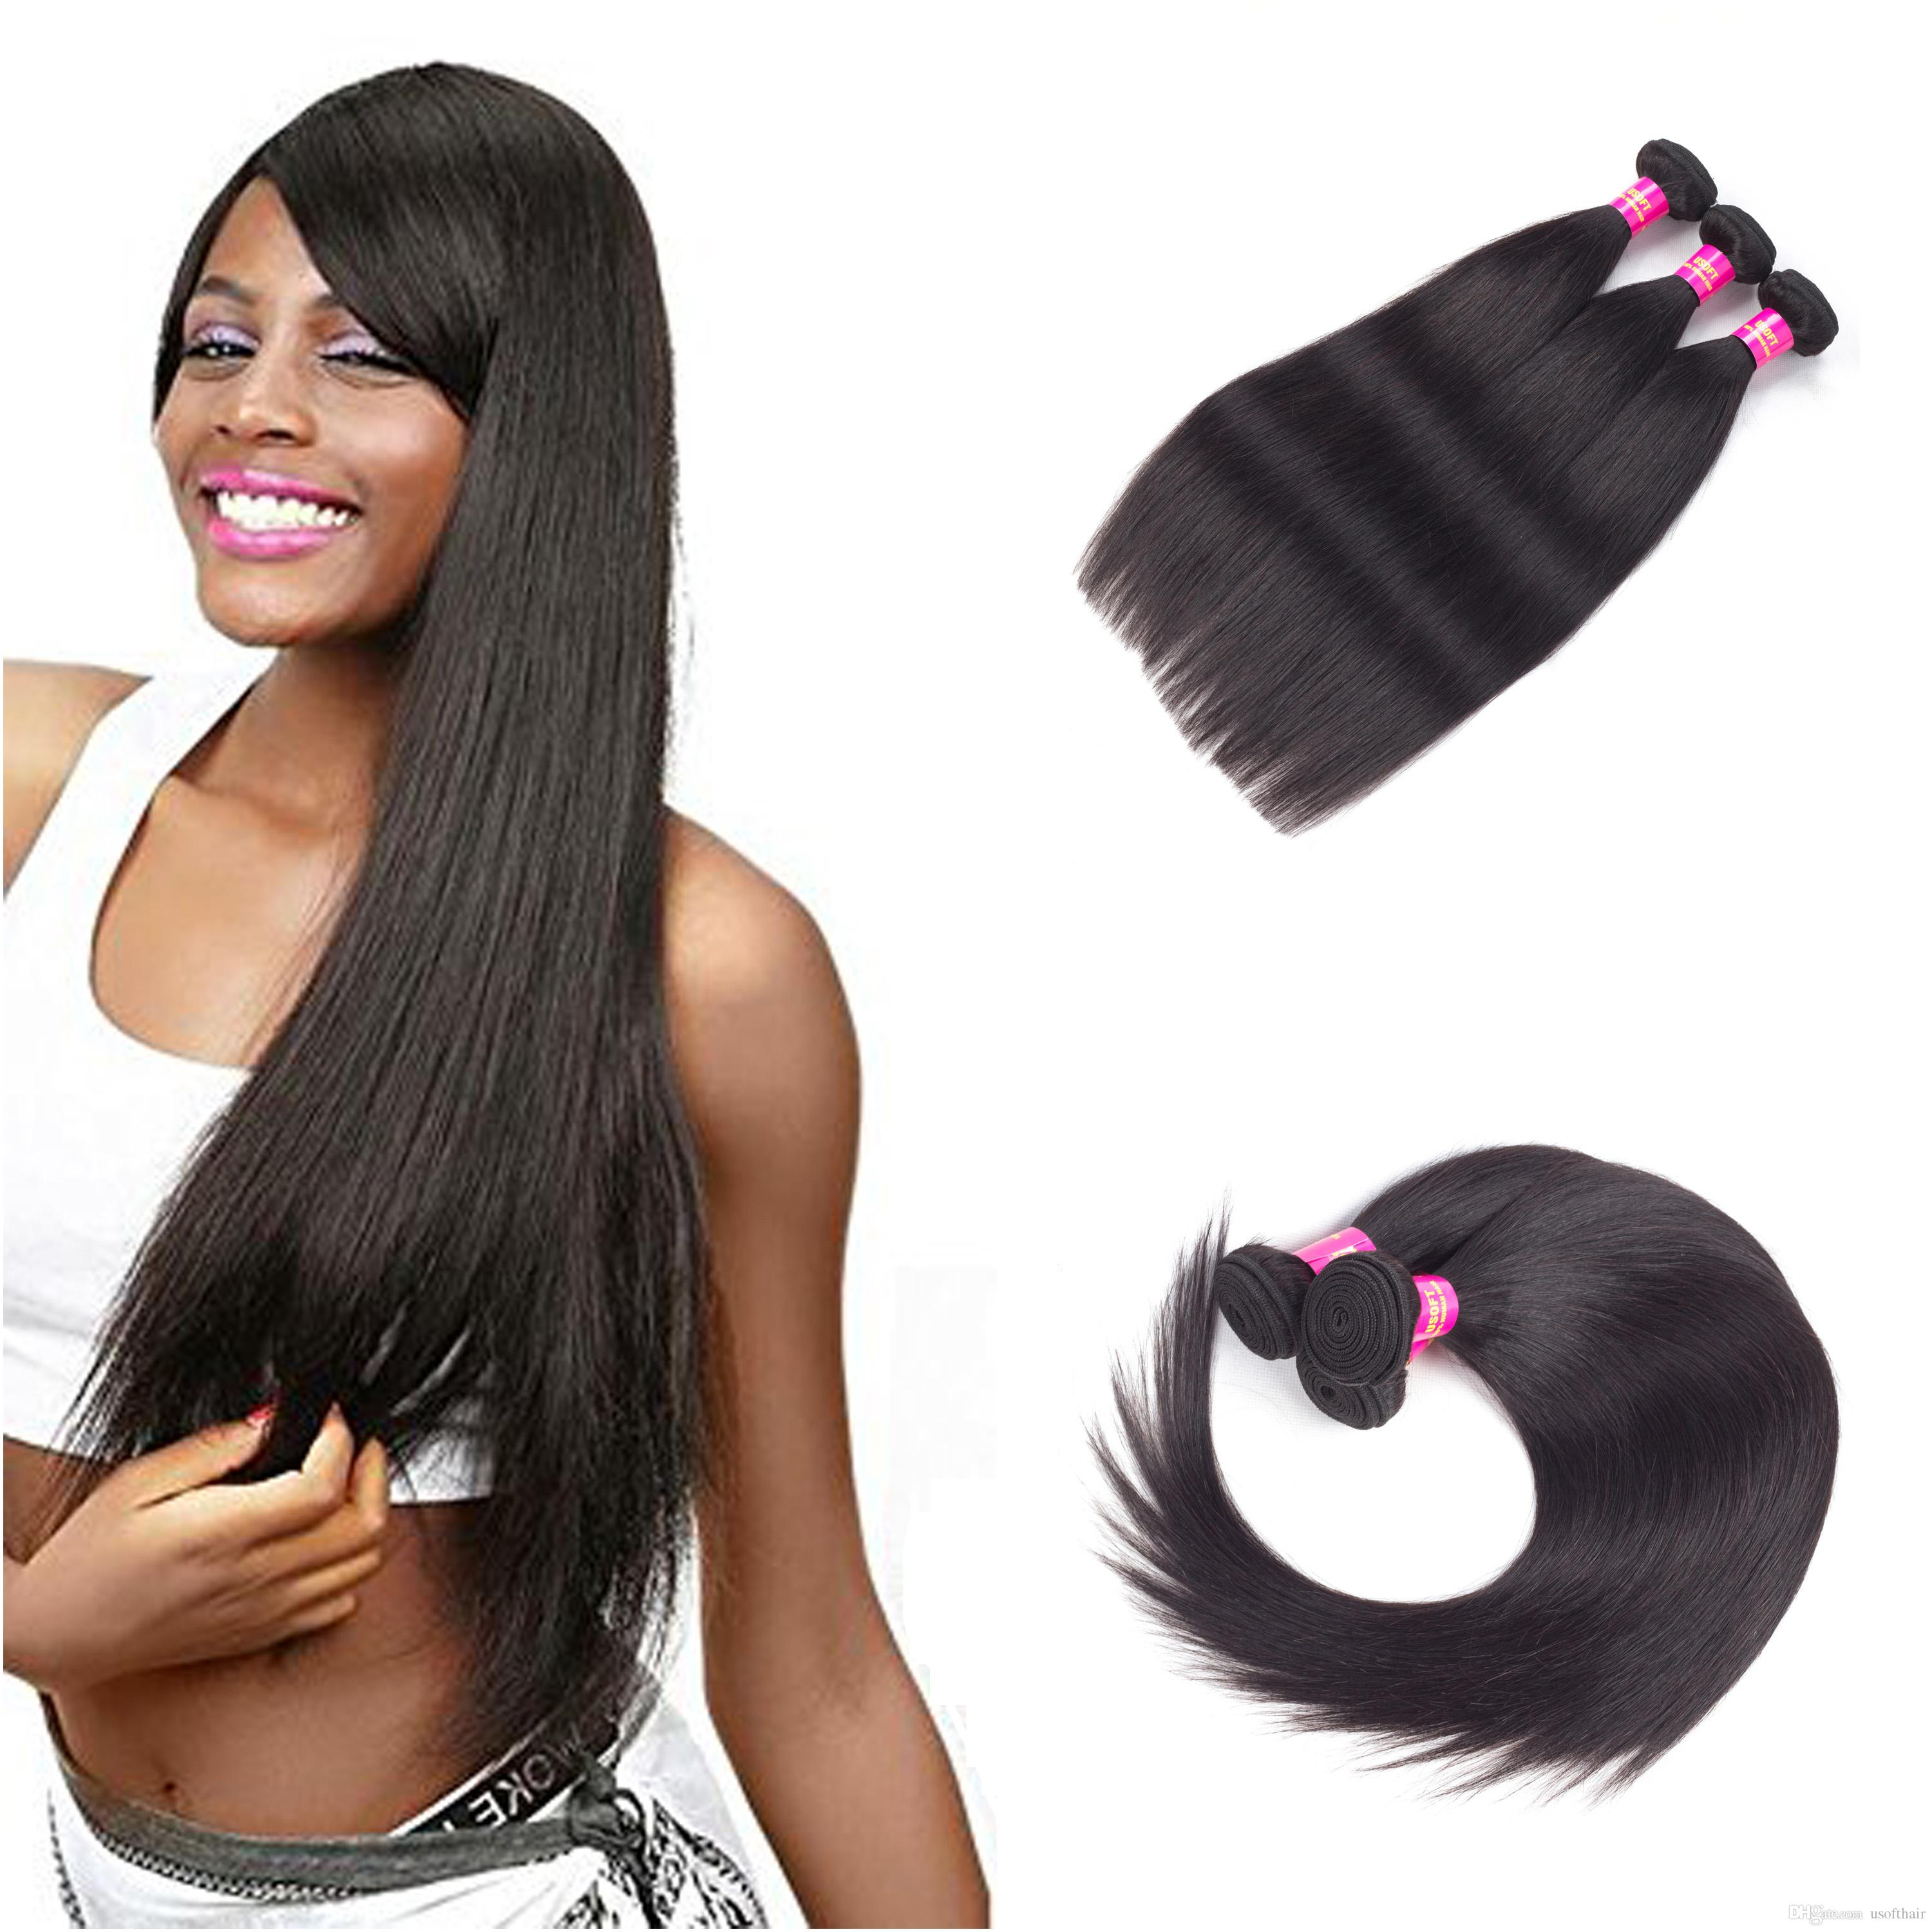 Cheap wholesale 34pack malaysian virgin straight hair weave real cheap wholesale 34pack malaysian virgin straight hair weave real human hair weft extensions cheap bundle hair products natural color 95 100gpc hair pmusecretfo Gallery